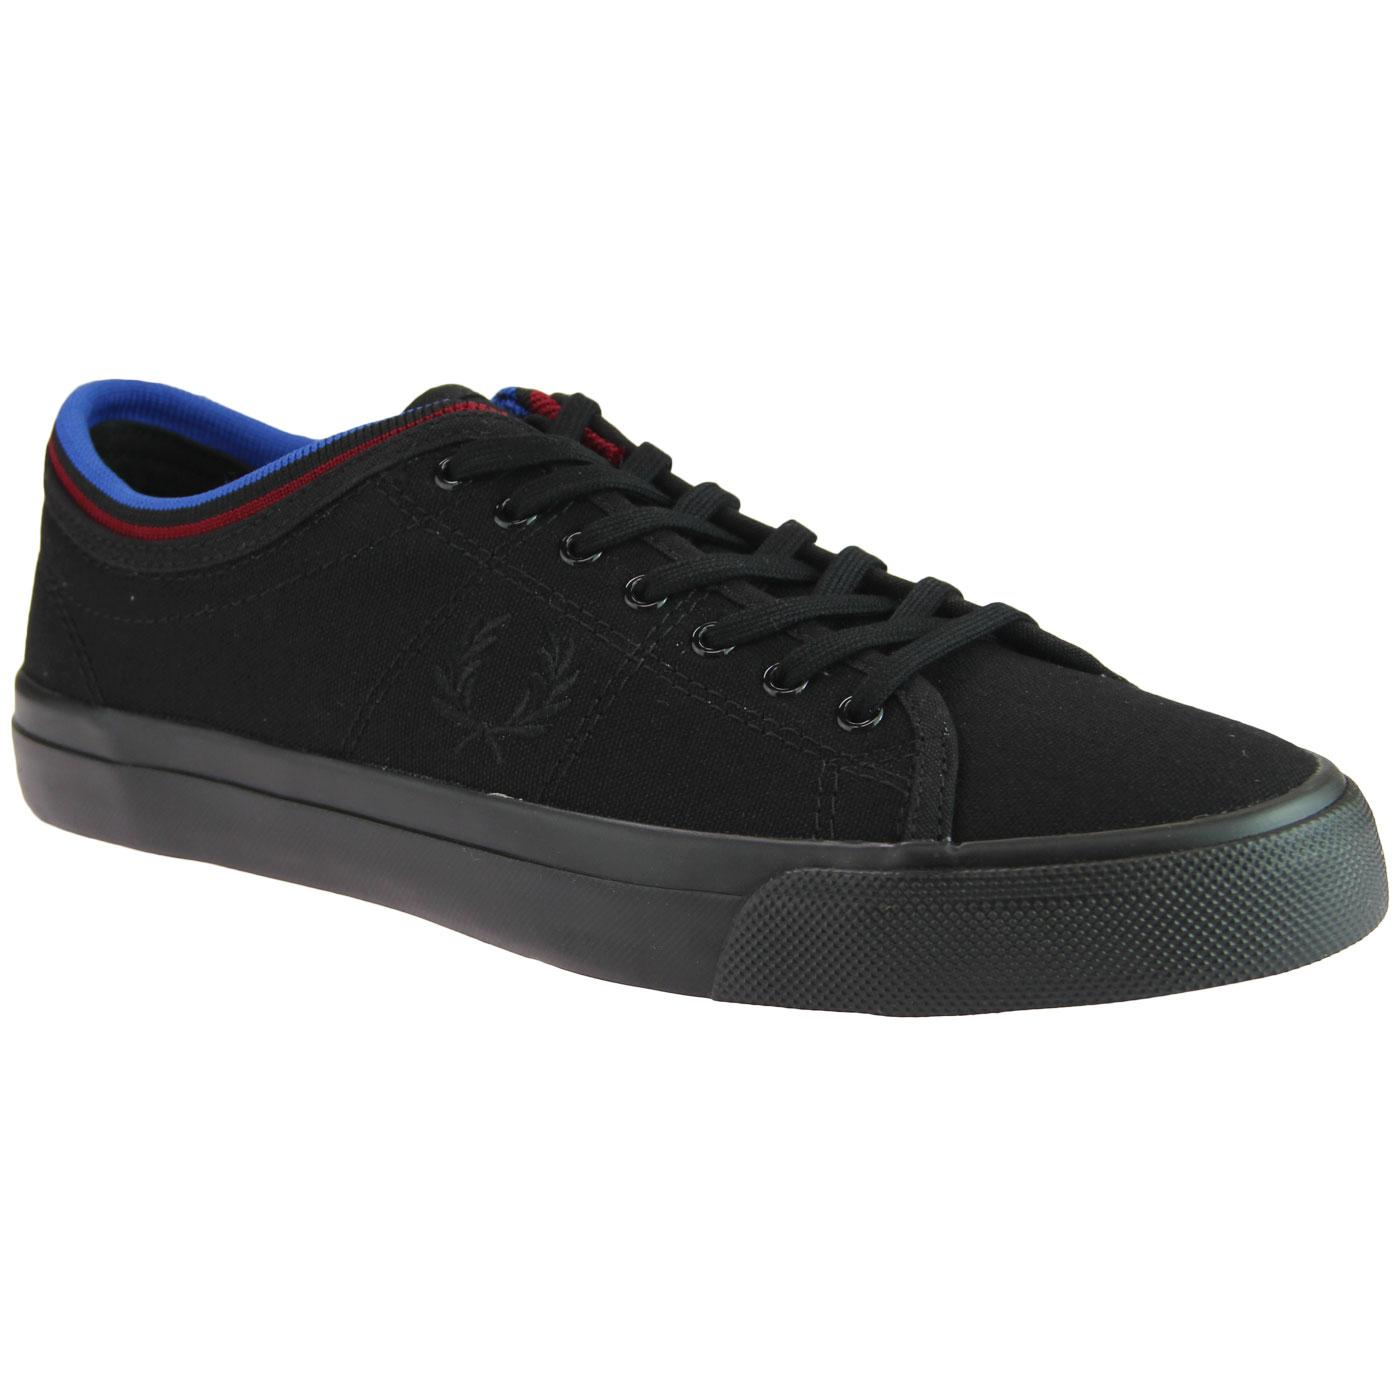 Kendrick FRED PERRY Retro Tipped Canvas Trainers B